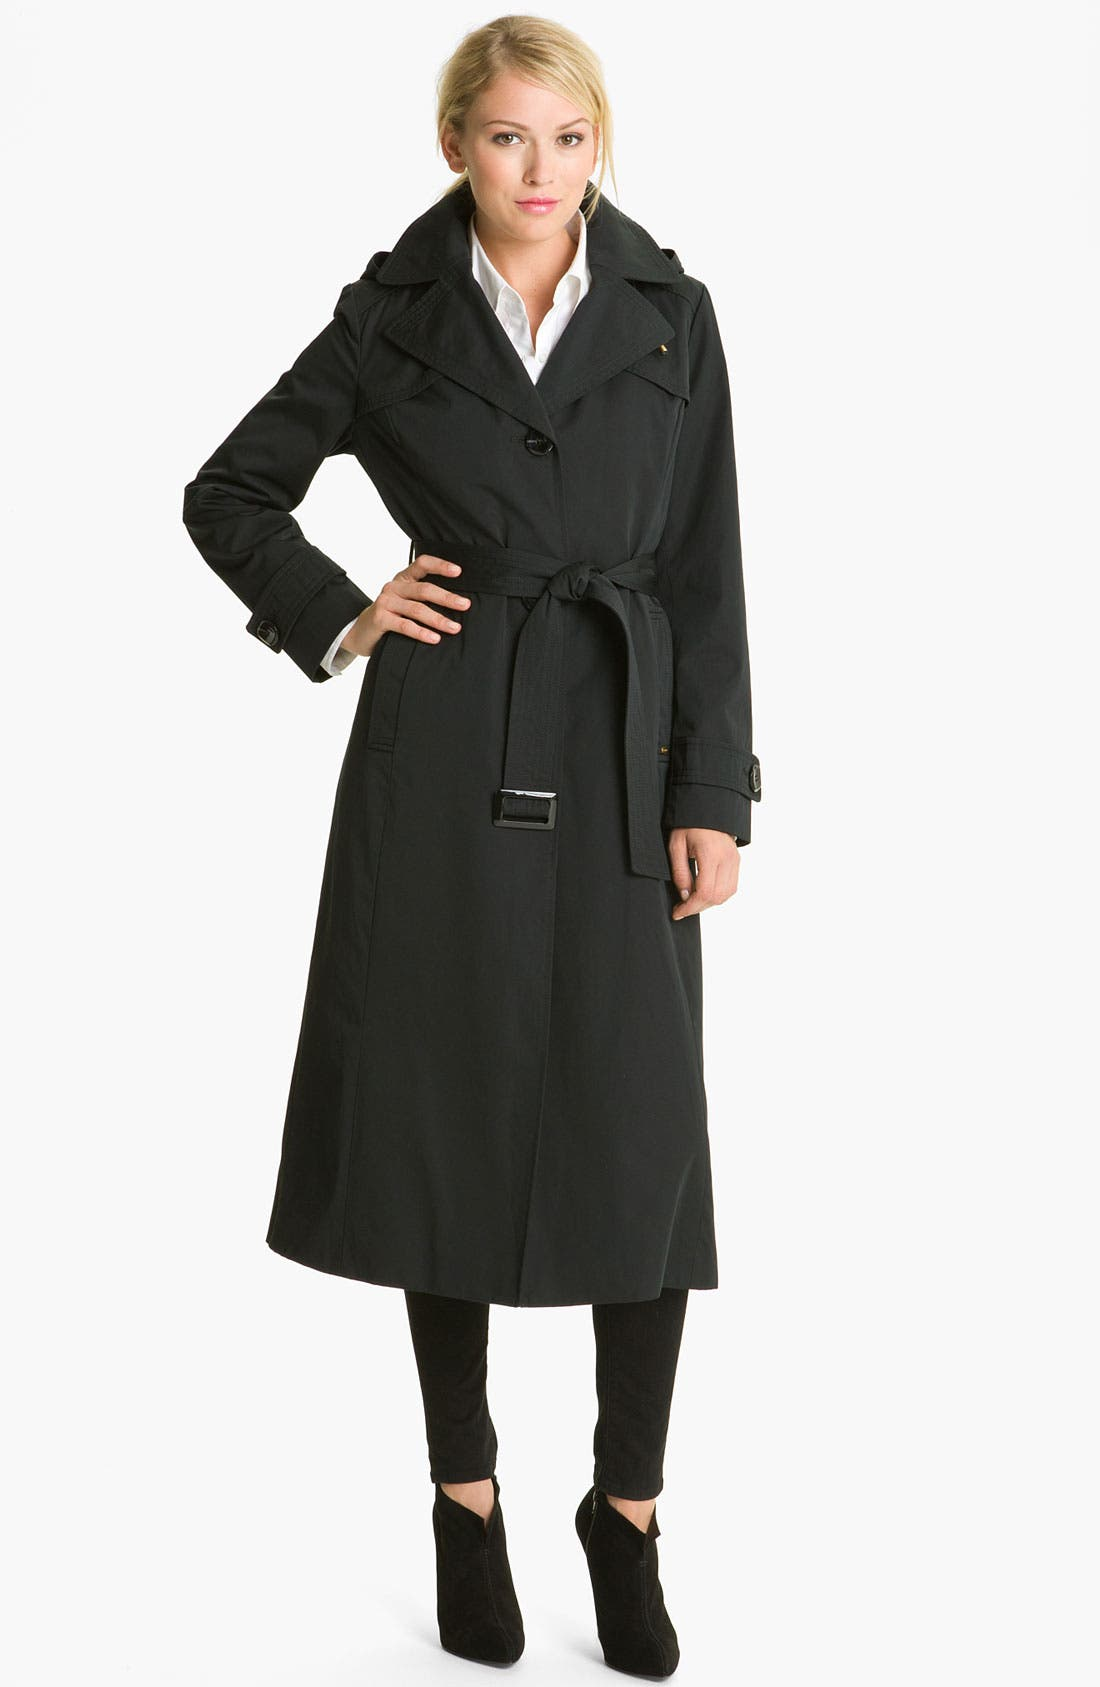 Alternate Image 1 Selected - Ellen Tracy 'Maxi' Detachable Hood Raincoat